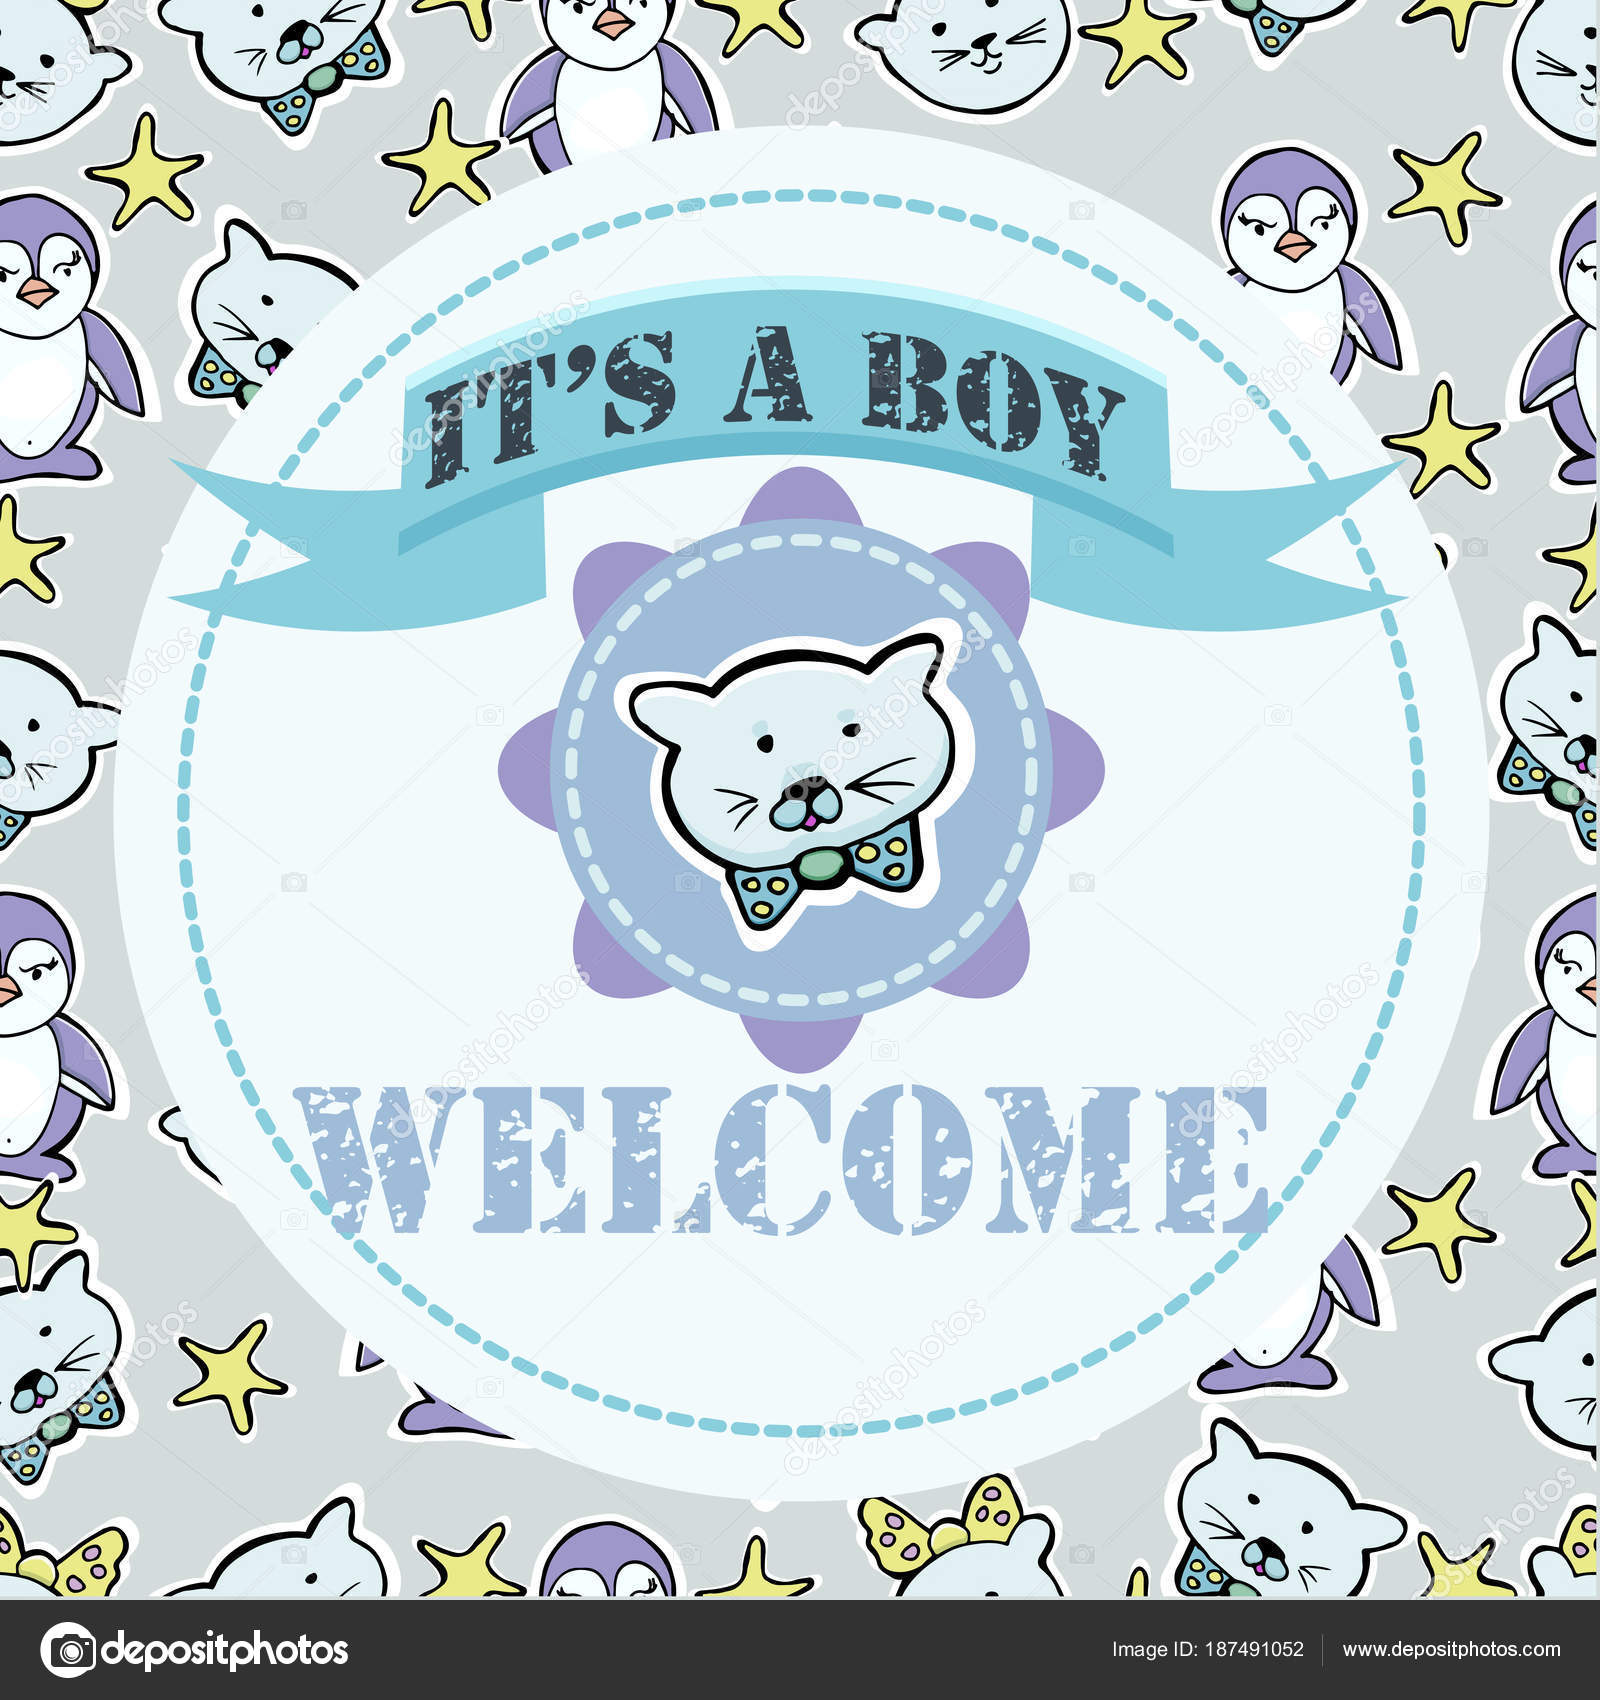 Baby shower and welcome greeting card text its a boy welcome baby shower and welcome greeting card text its a boy welcome little kittens penguins stars stickers vector by bobcat2004mail kristyandbryce Choice Image